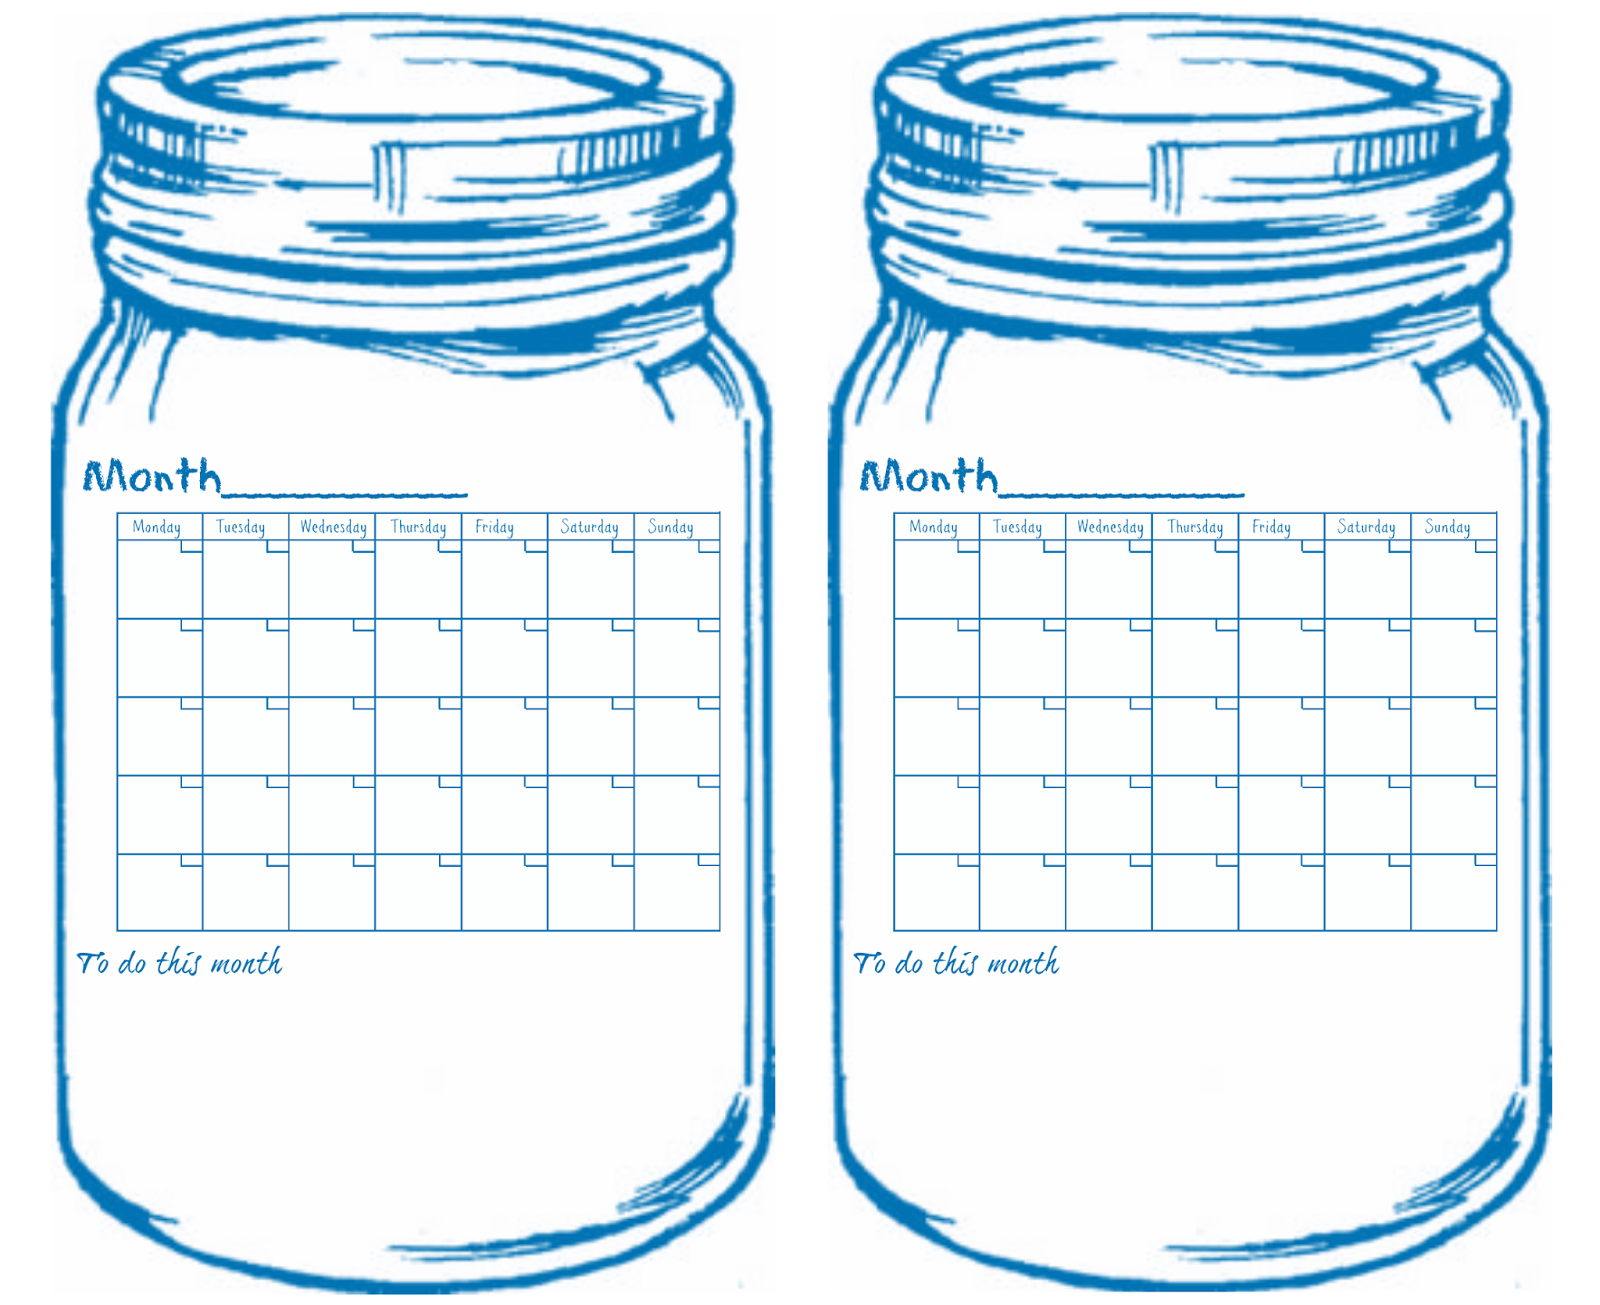 Free printable universal jar calendars 5 colors on the blog do it free printable universal jar calendars 5 colors on the blog solutioingenieria Image collections